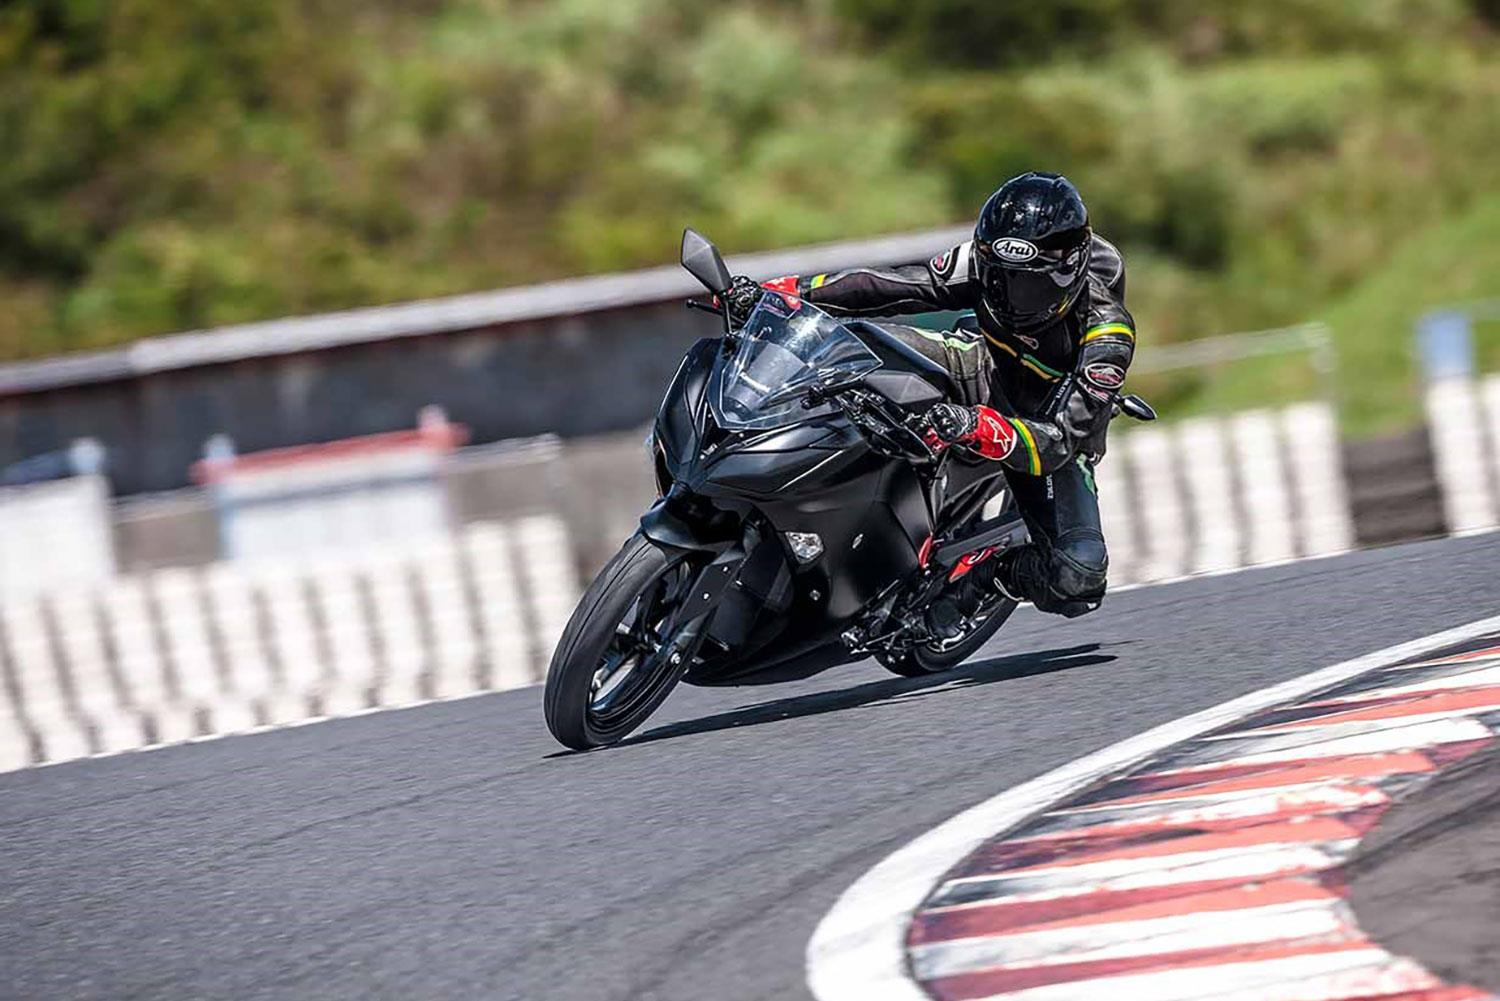 Better together: Kawasaki working on hybrid bikes and AI assistants